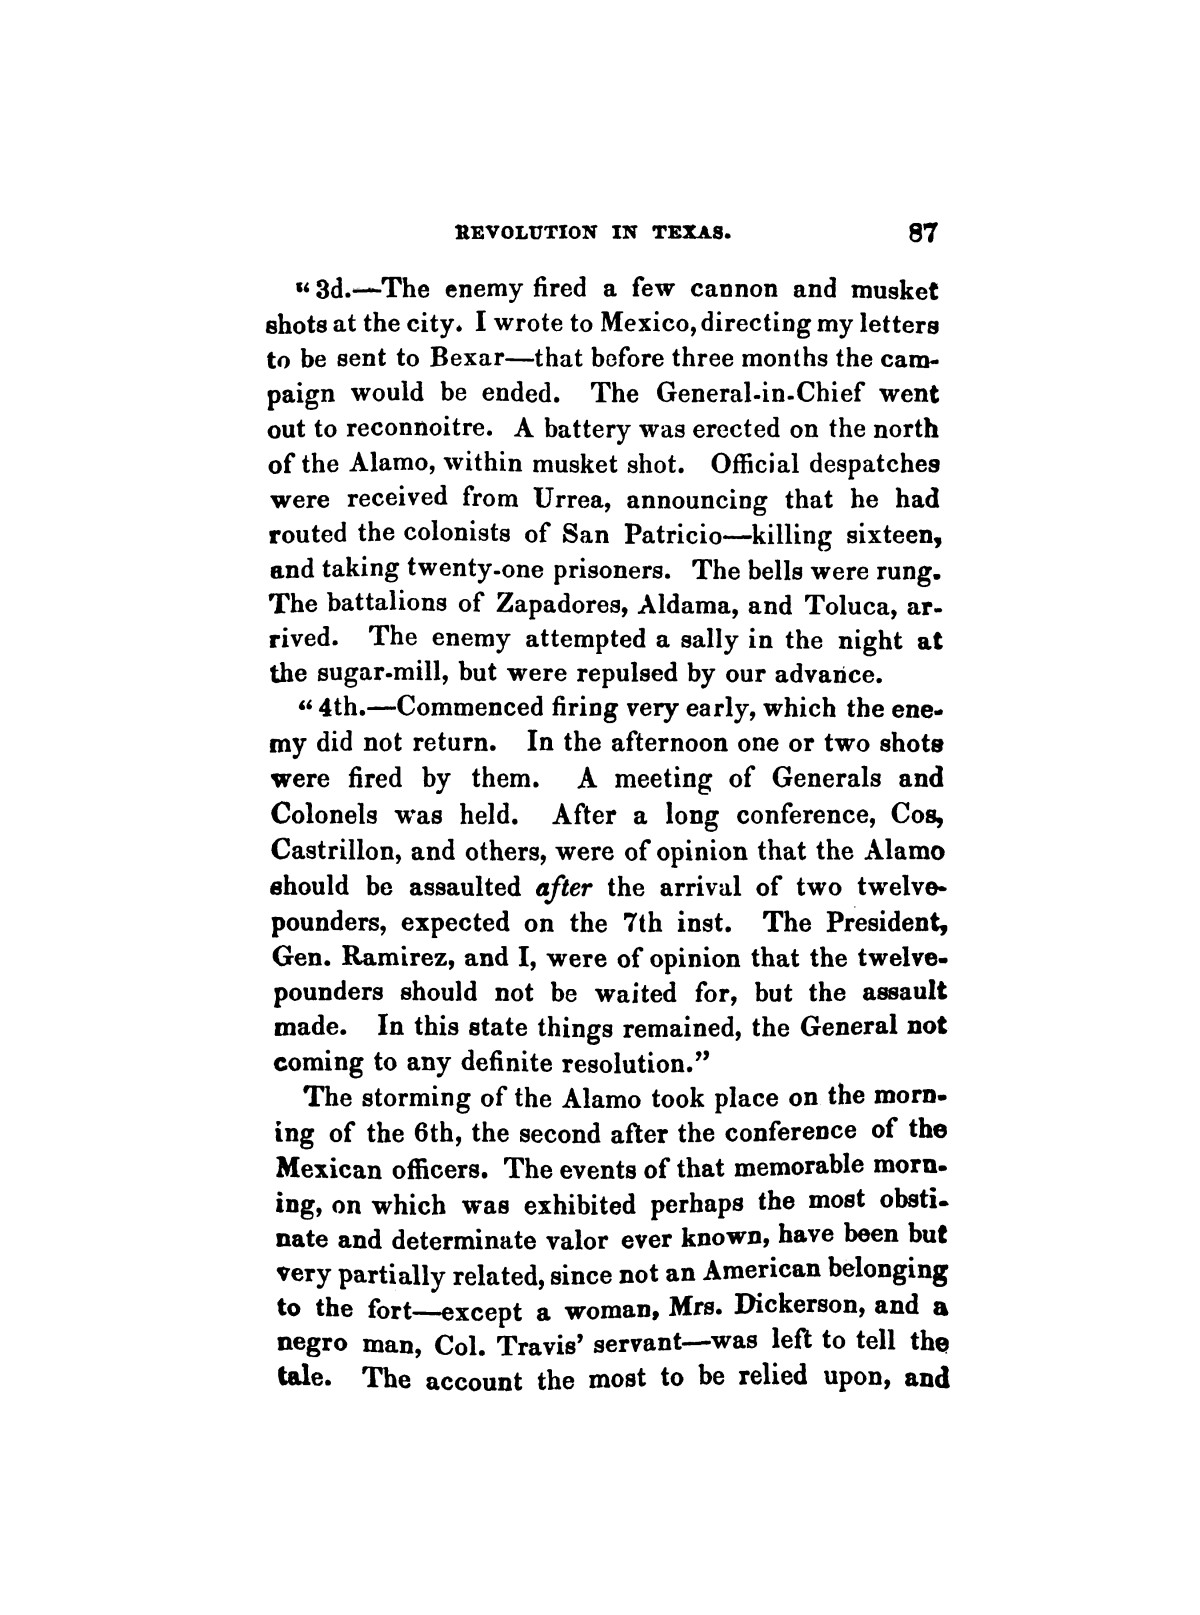 History of the revolution in Texas, particularly of the war of 1835 & '36; together with the latest geographical, topographical, and statistical accounts of the country, from the most authentic sources. Also, an appendix. By the Rev. C. Newell.                                                                                                      [Sequence #]: 99 of 227